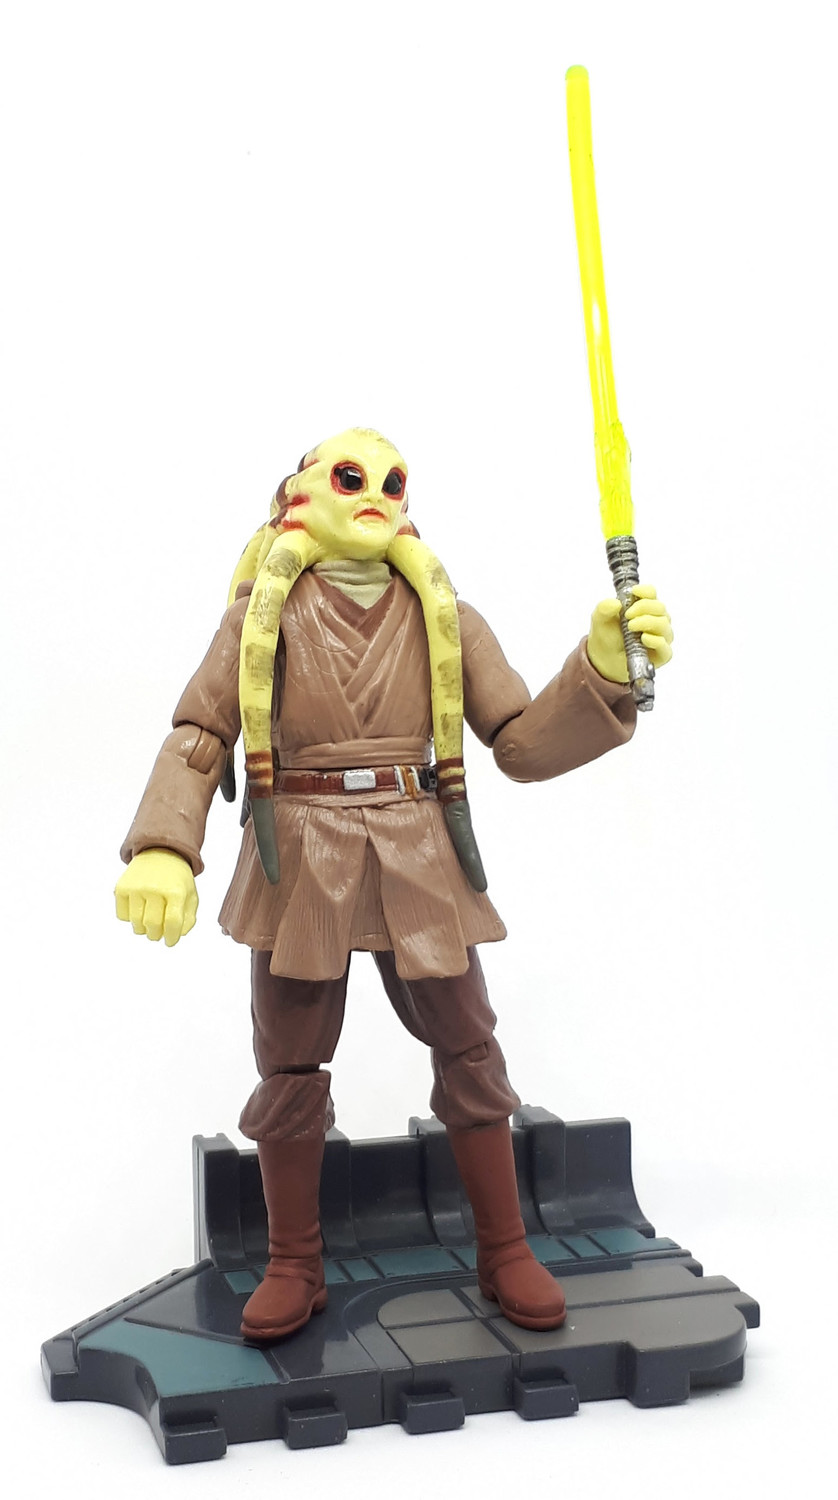 Kit Fisto Jedi Master Revenge Of The Sith Action Figure Iii 22